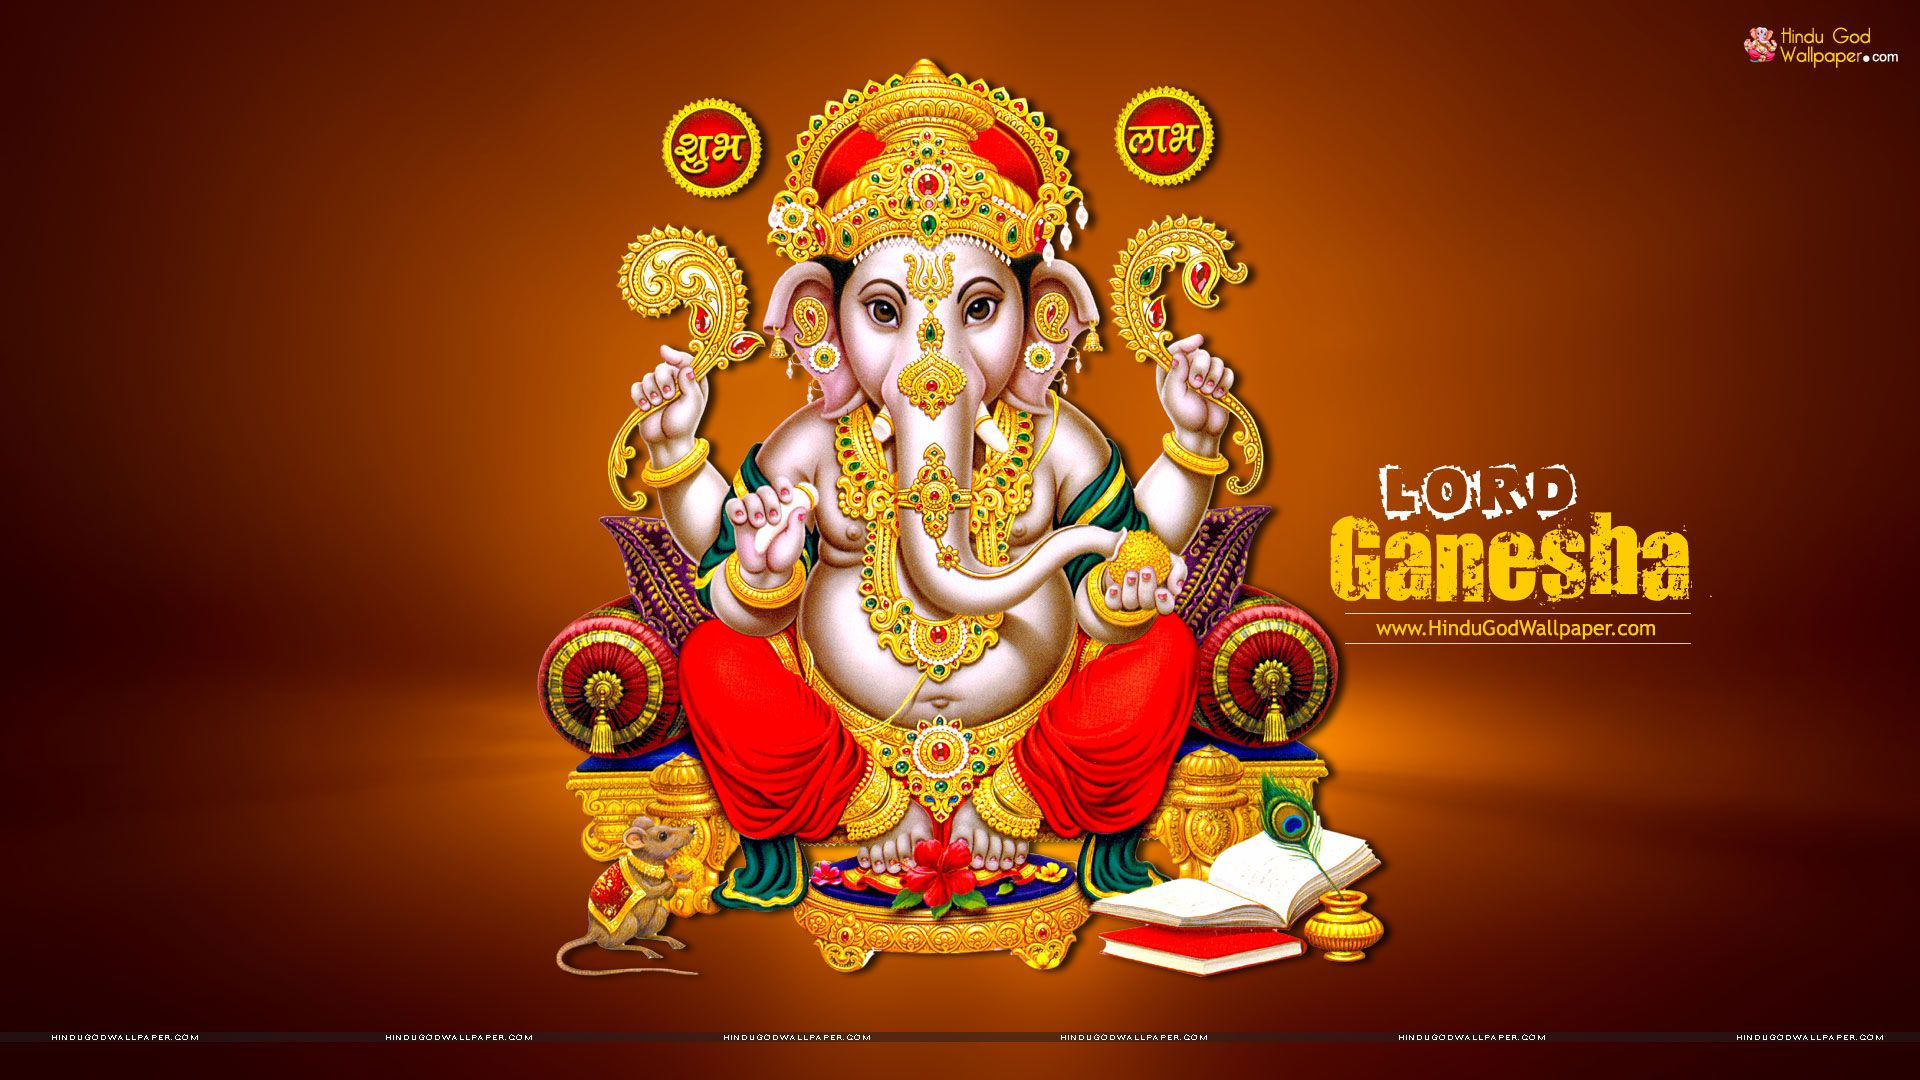 Lord Ganesha Hd Wallpapers: Lord Ganesha Wallpaper 1920x1080